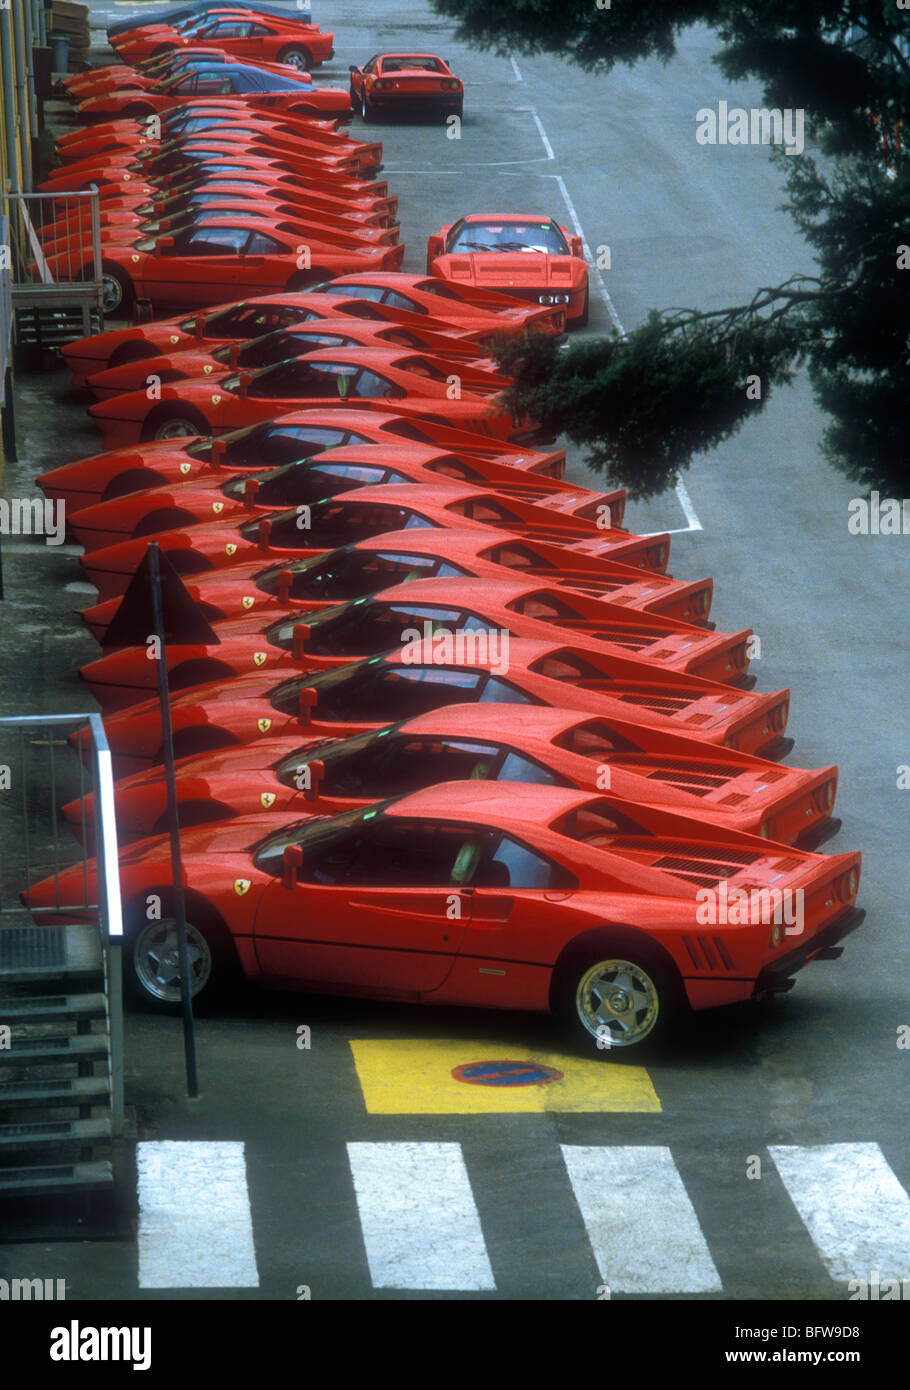 31 examples of  288 GTO Ferrari's parked at the Marenello factory 1984 - Stock Image